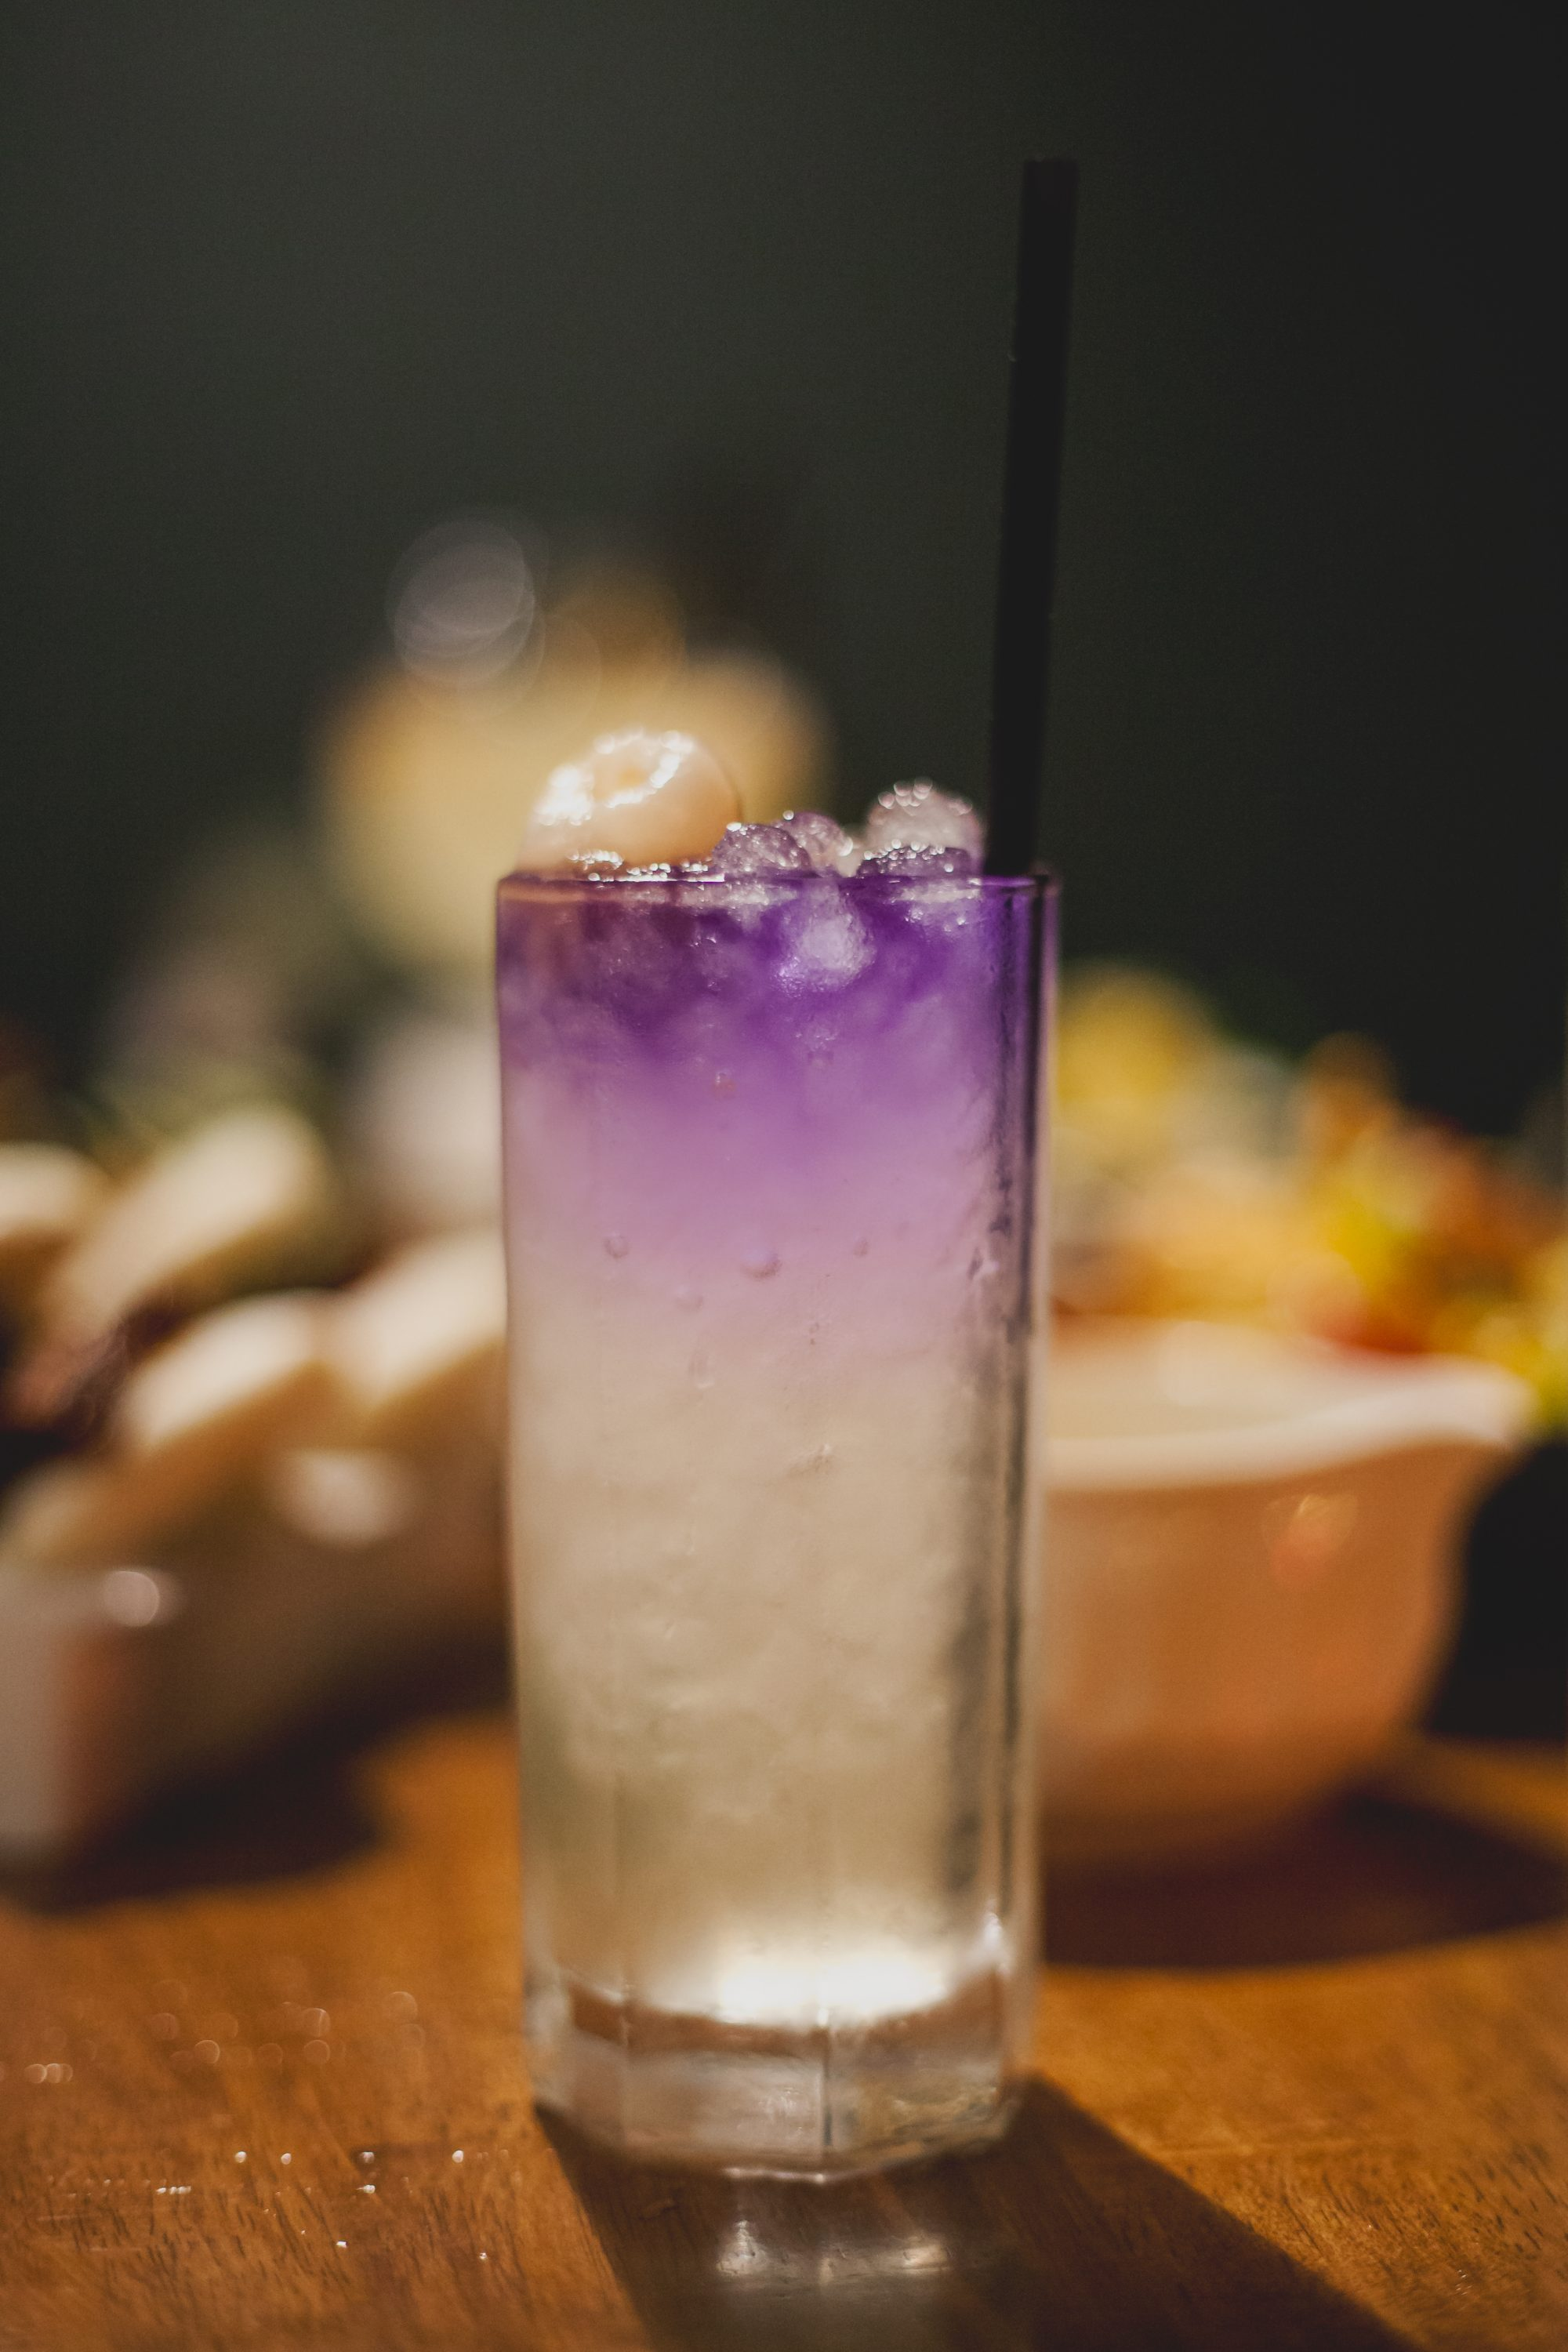 Beauty and the East: Lychee, sabe gold rum, butterfly pea, and mint. This beautiful drink is sweet, slightly minty, and finishes off with sweet lychee for a hint of Asian flavor. Definitely an Instagram-worthy drink that tastes as good as it looks! - Next Republic Kitchen, Alhambra, California, US, courtesy of www.theballeronabudget.com